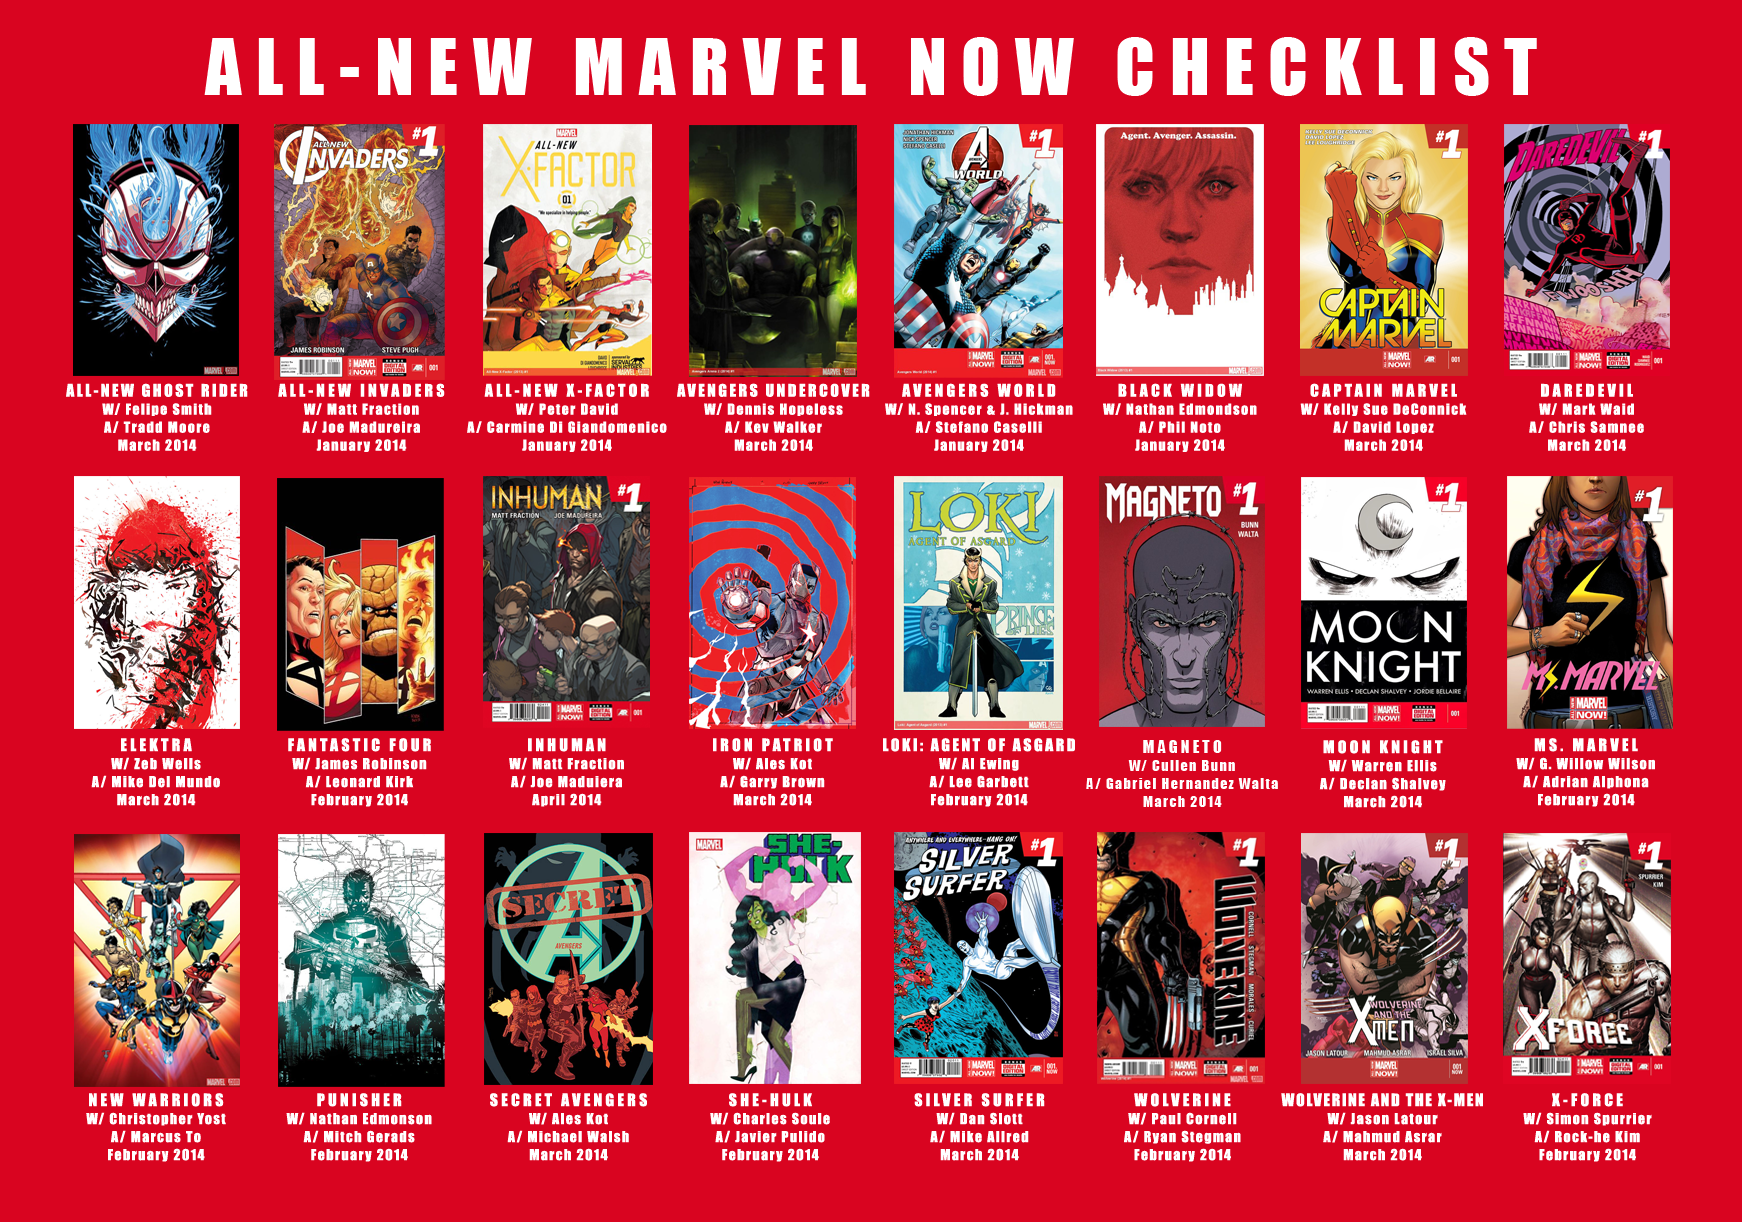 all-new-marvel-now-checklist.png